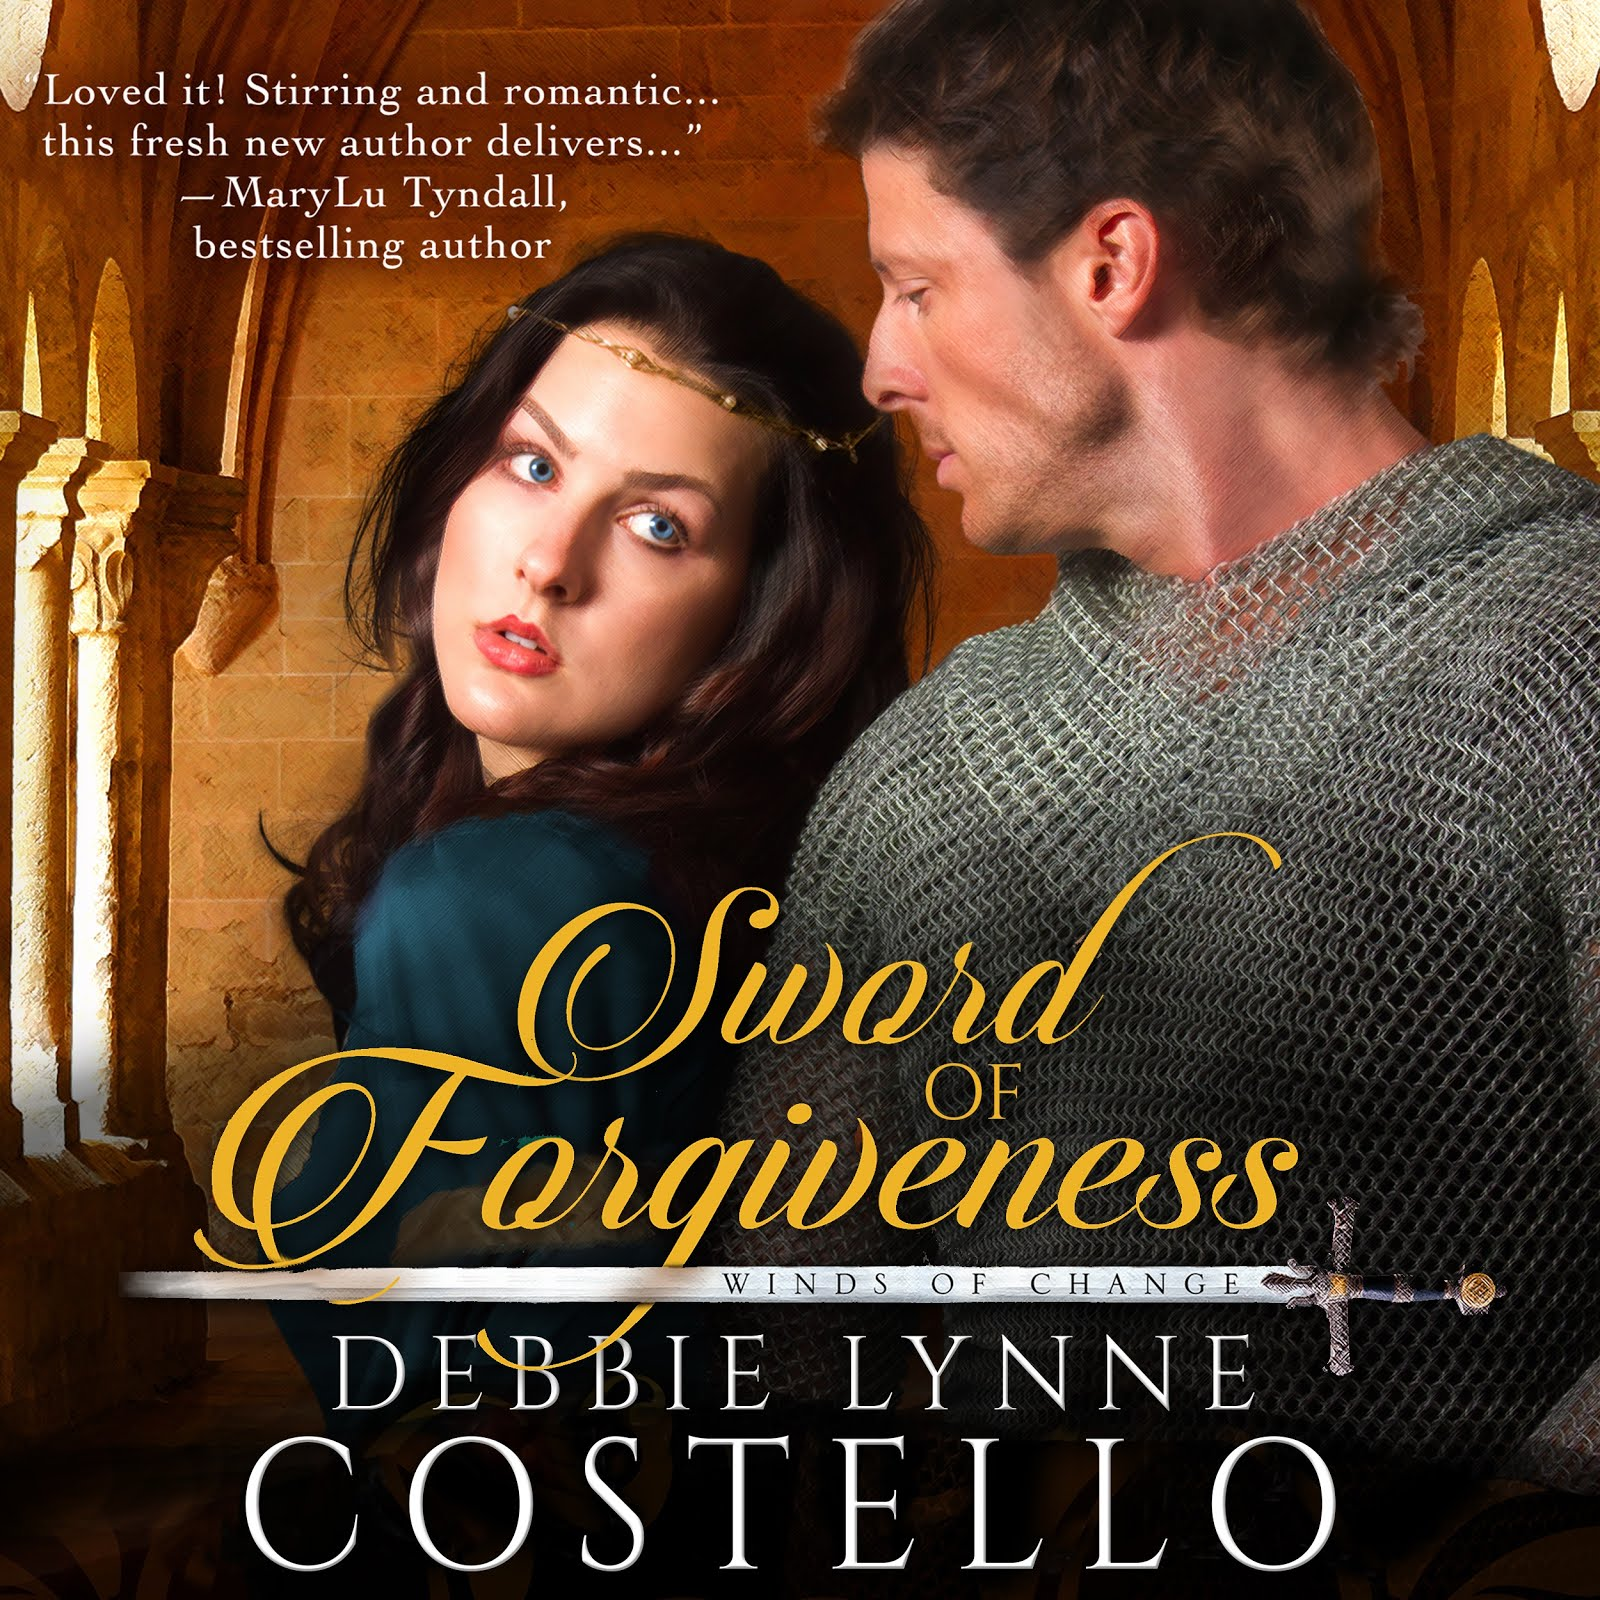 Sword of Forgiveness is now Available in Audio